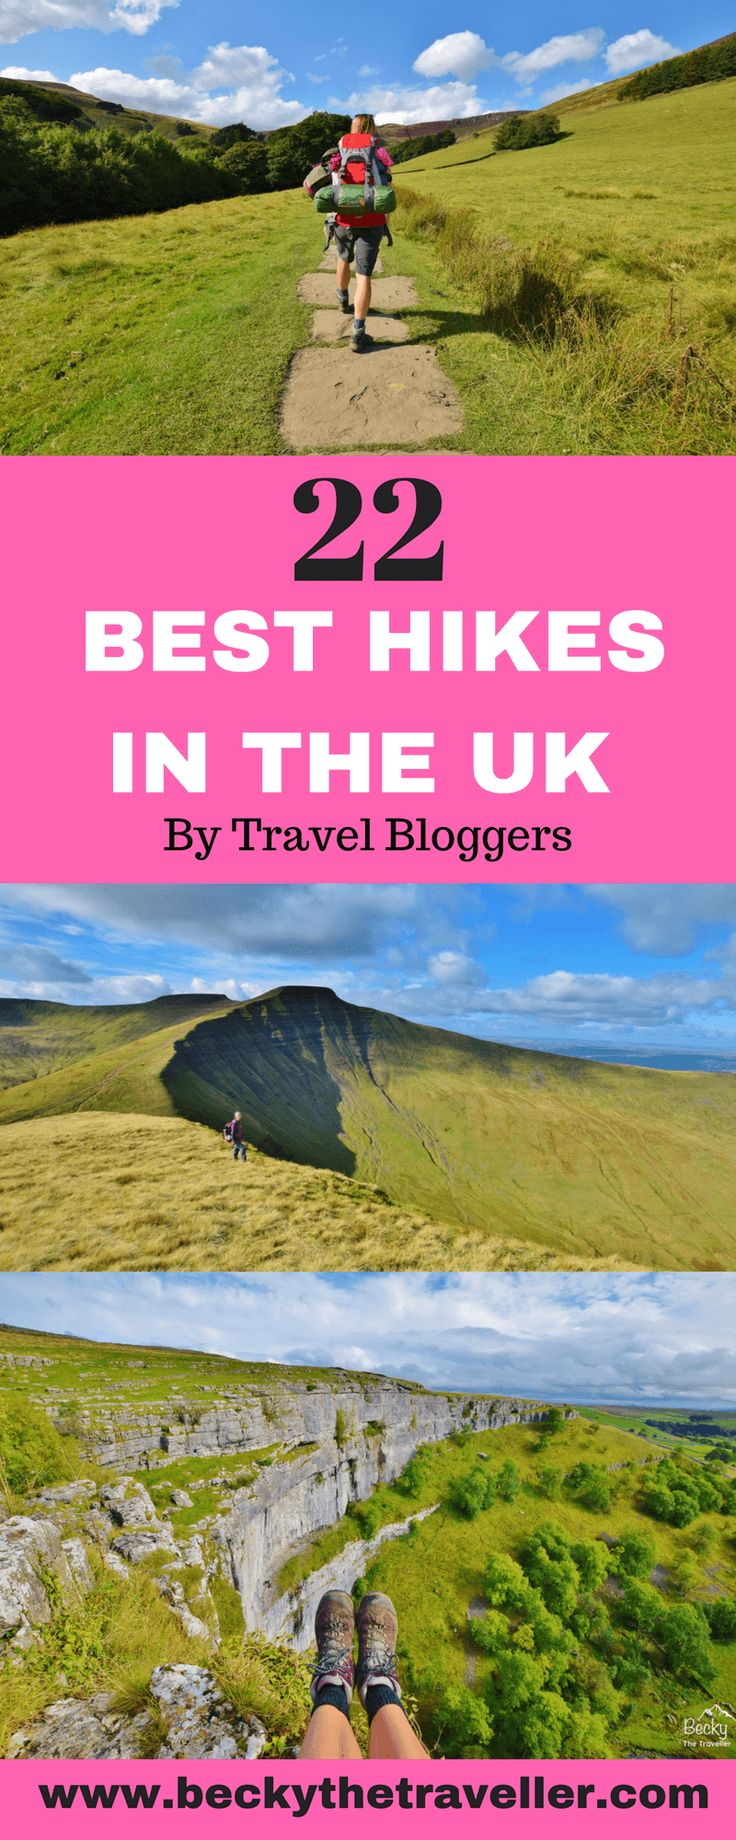 Best day hikes in the UK. A list of the best day hikes in the UK from Travel bloggers. Best hikes in England. Best hikes in Northern Ireland. Best Hikes in Scotland. Best hikes in Wales. Includes bloggers favourite hikes plus top tips, hiking distance and hiking time for completing the walks. Hikes include Scafell Pike, Dovedale Walk Peak District, Ben Nevis, Pen y Fan, Edinburgh Leith, St Agnes, Conic Hill. And many more. Best hikes | Best walks | Day hikes | UK hiking | UK walks